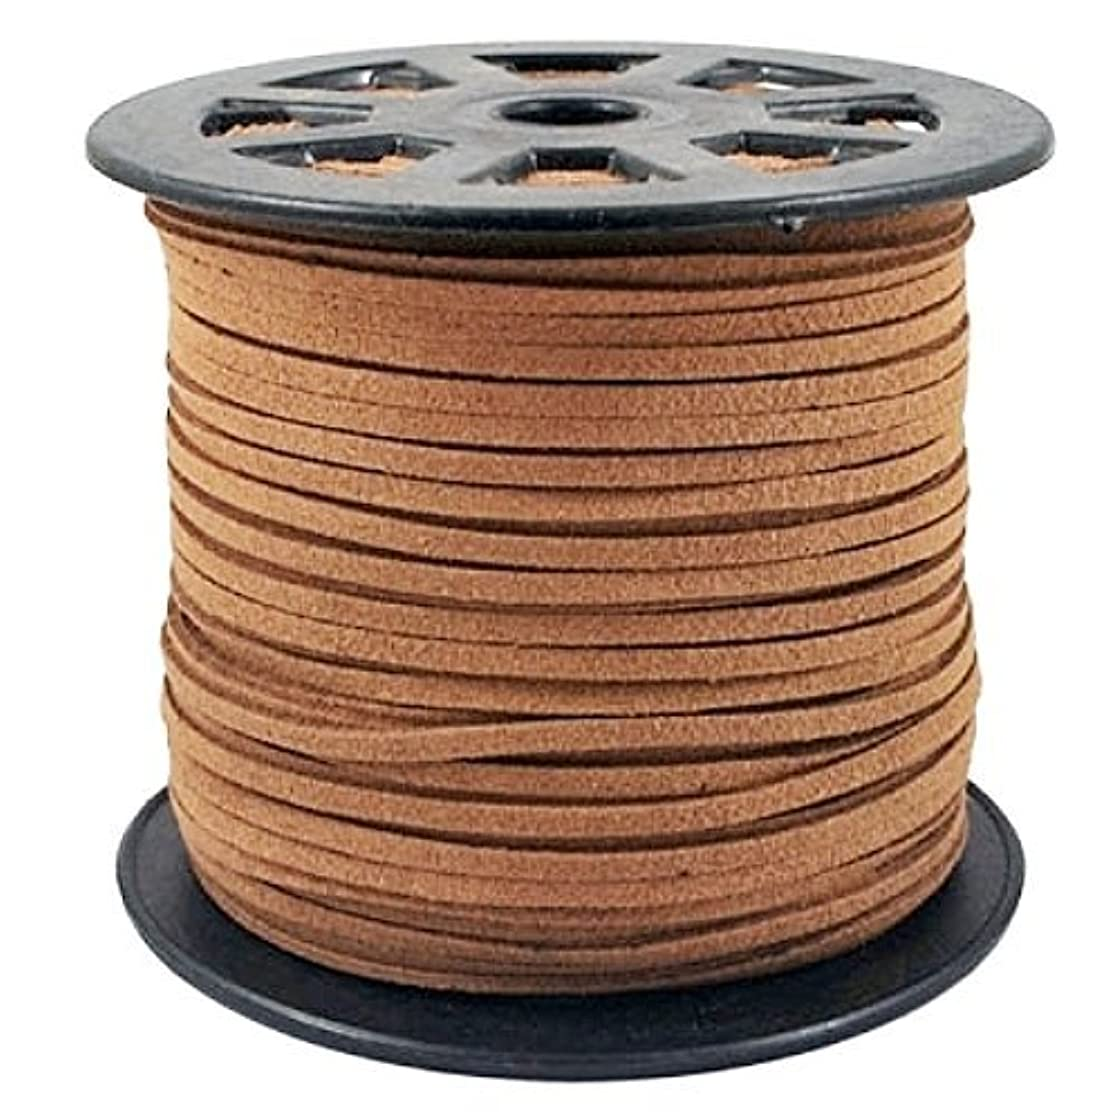 BeadsTreasure Burly Wood Suede Cord Lace Leather Cord For Jewelry Making 3x1.5 mm-20 Feet.